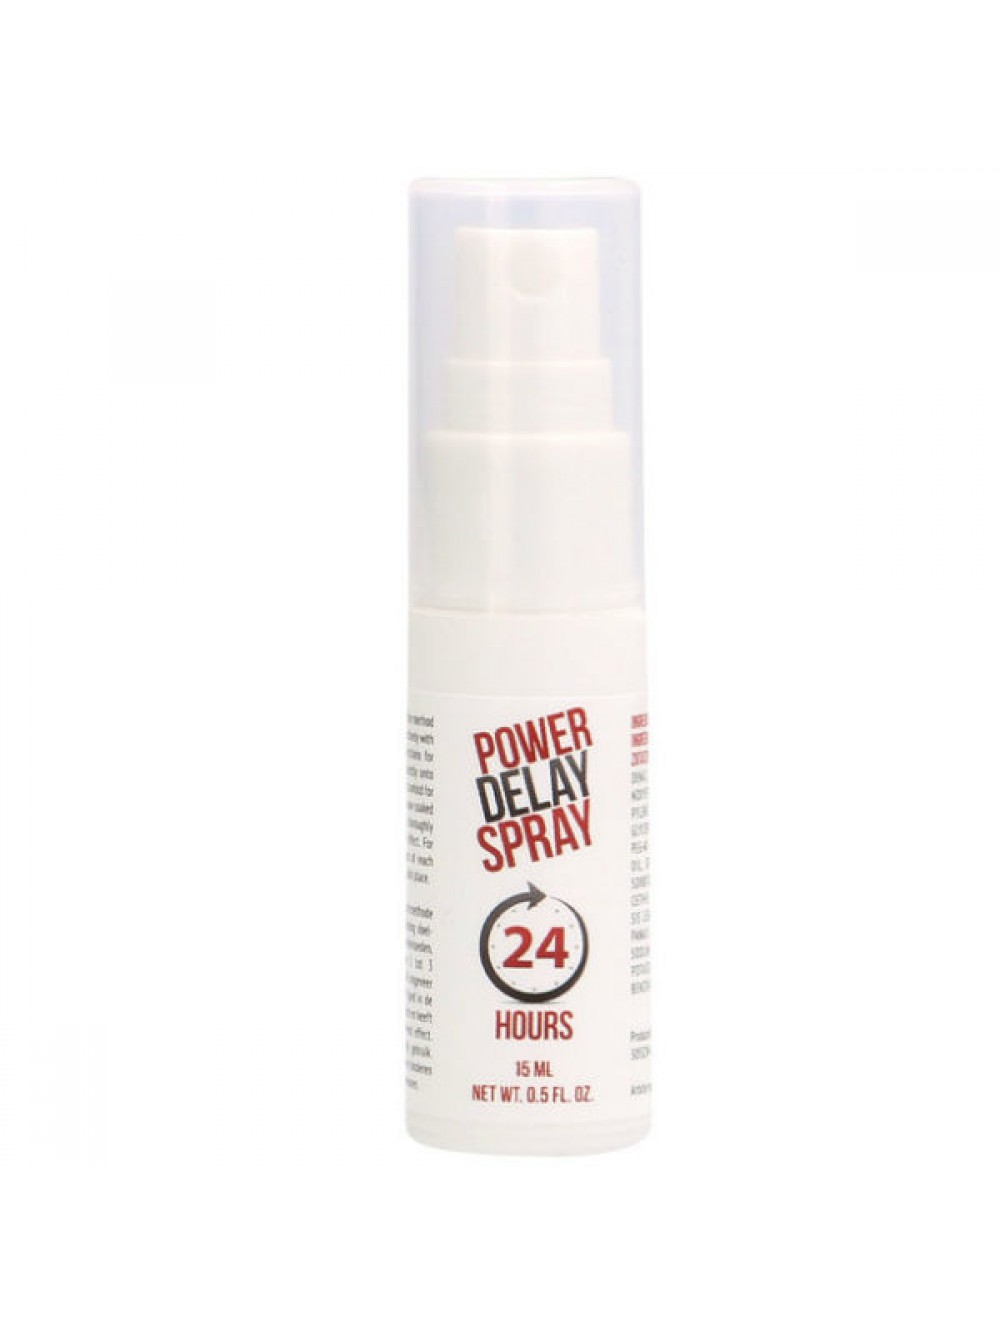 PHARMQUESTS POWER DELAY SPRAY 24H 15ML